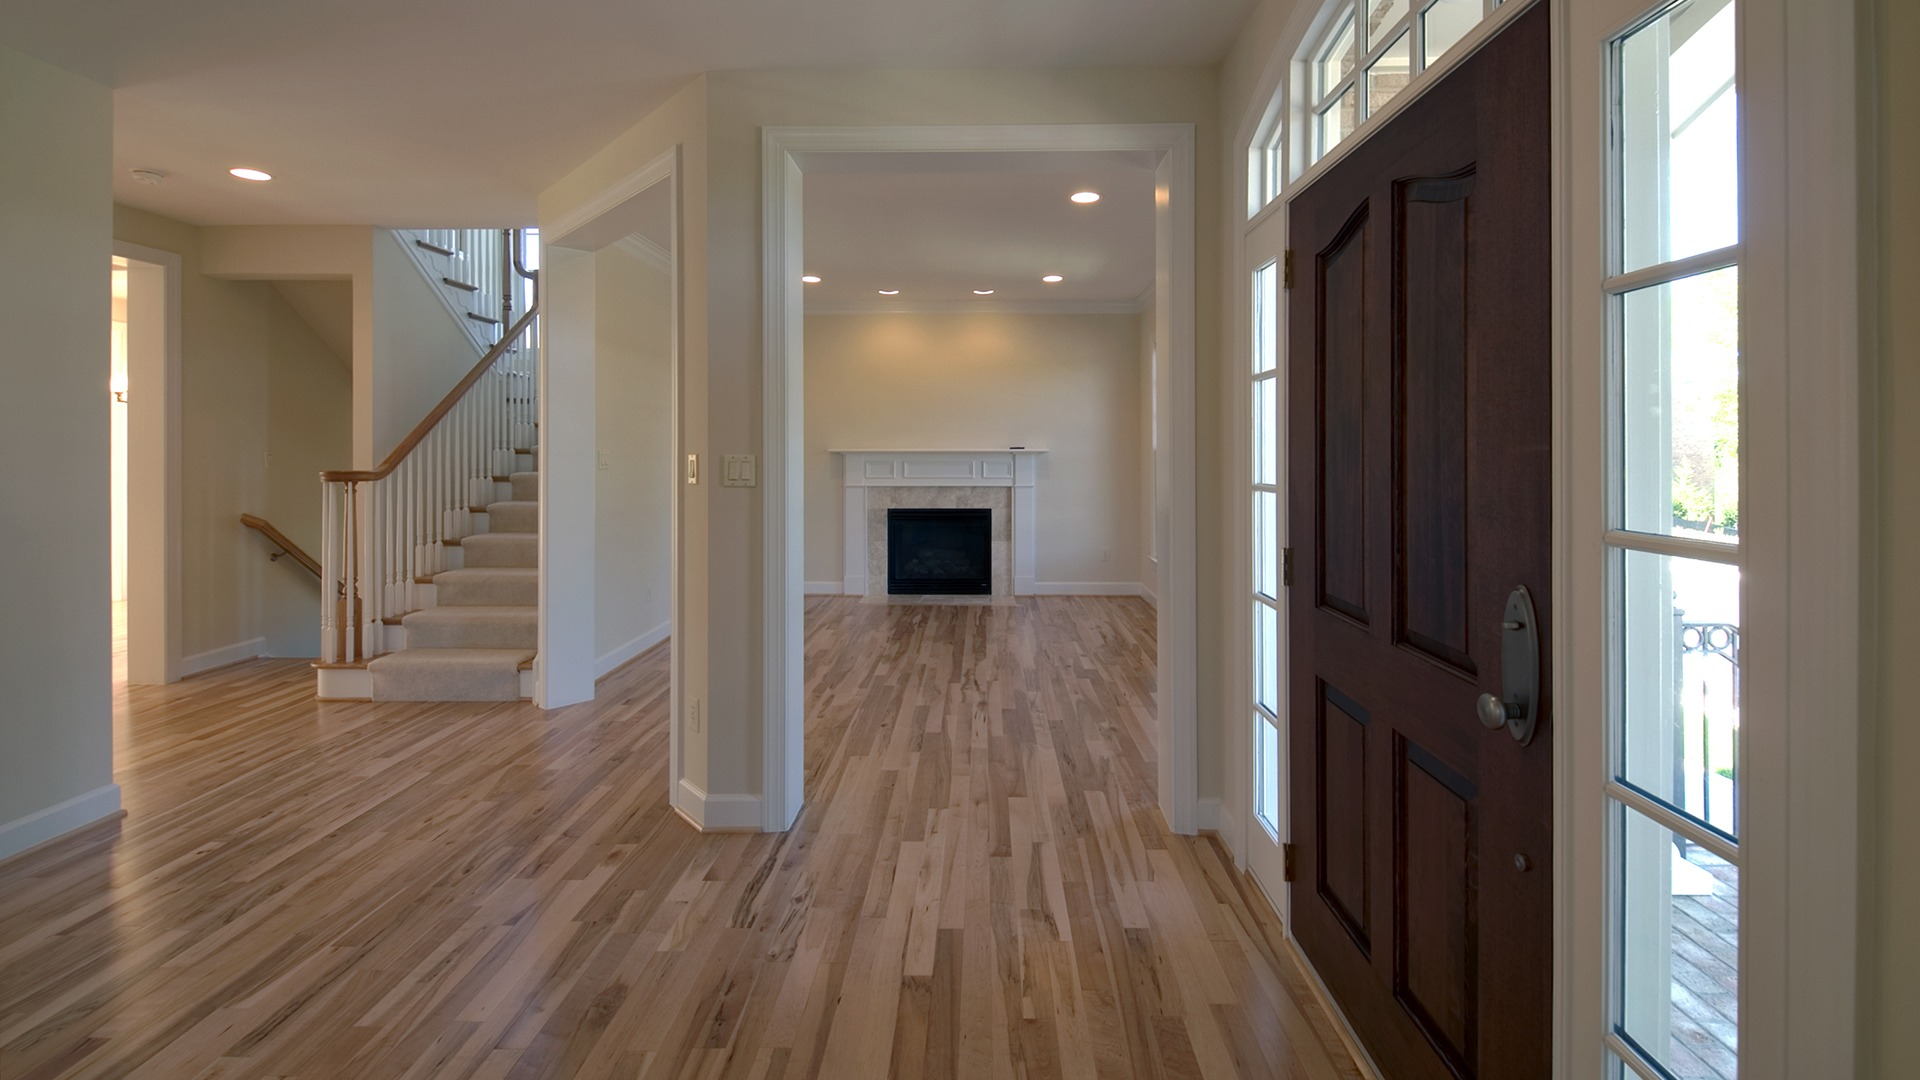 The Foyer of the Brentwood model in Brambleton. Some options shown.